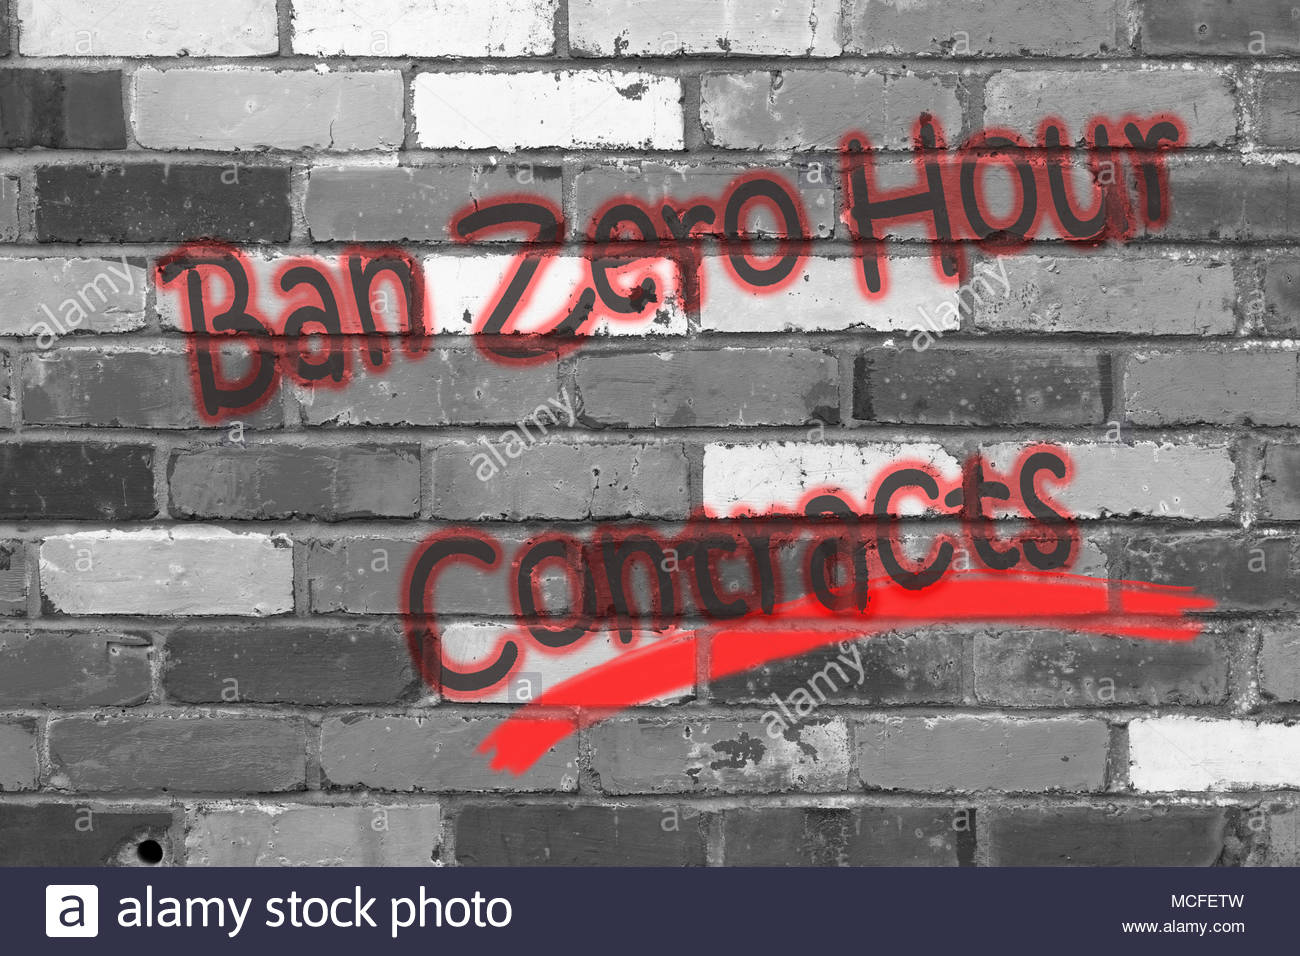 Looking at a black and white brickwall with the wording Ban Zero Hour Contracts. Dorset, England - Stock Image